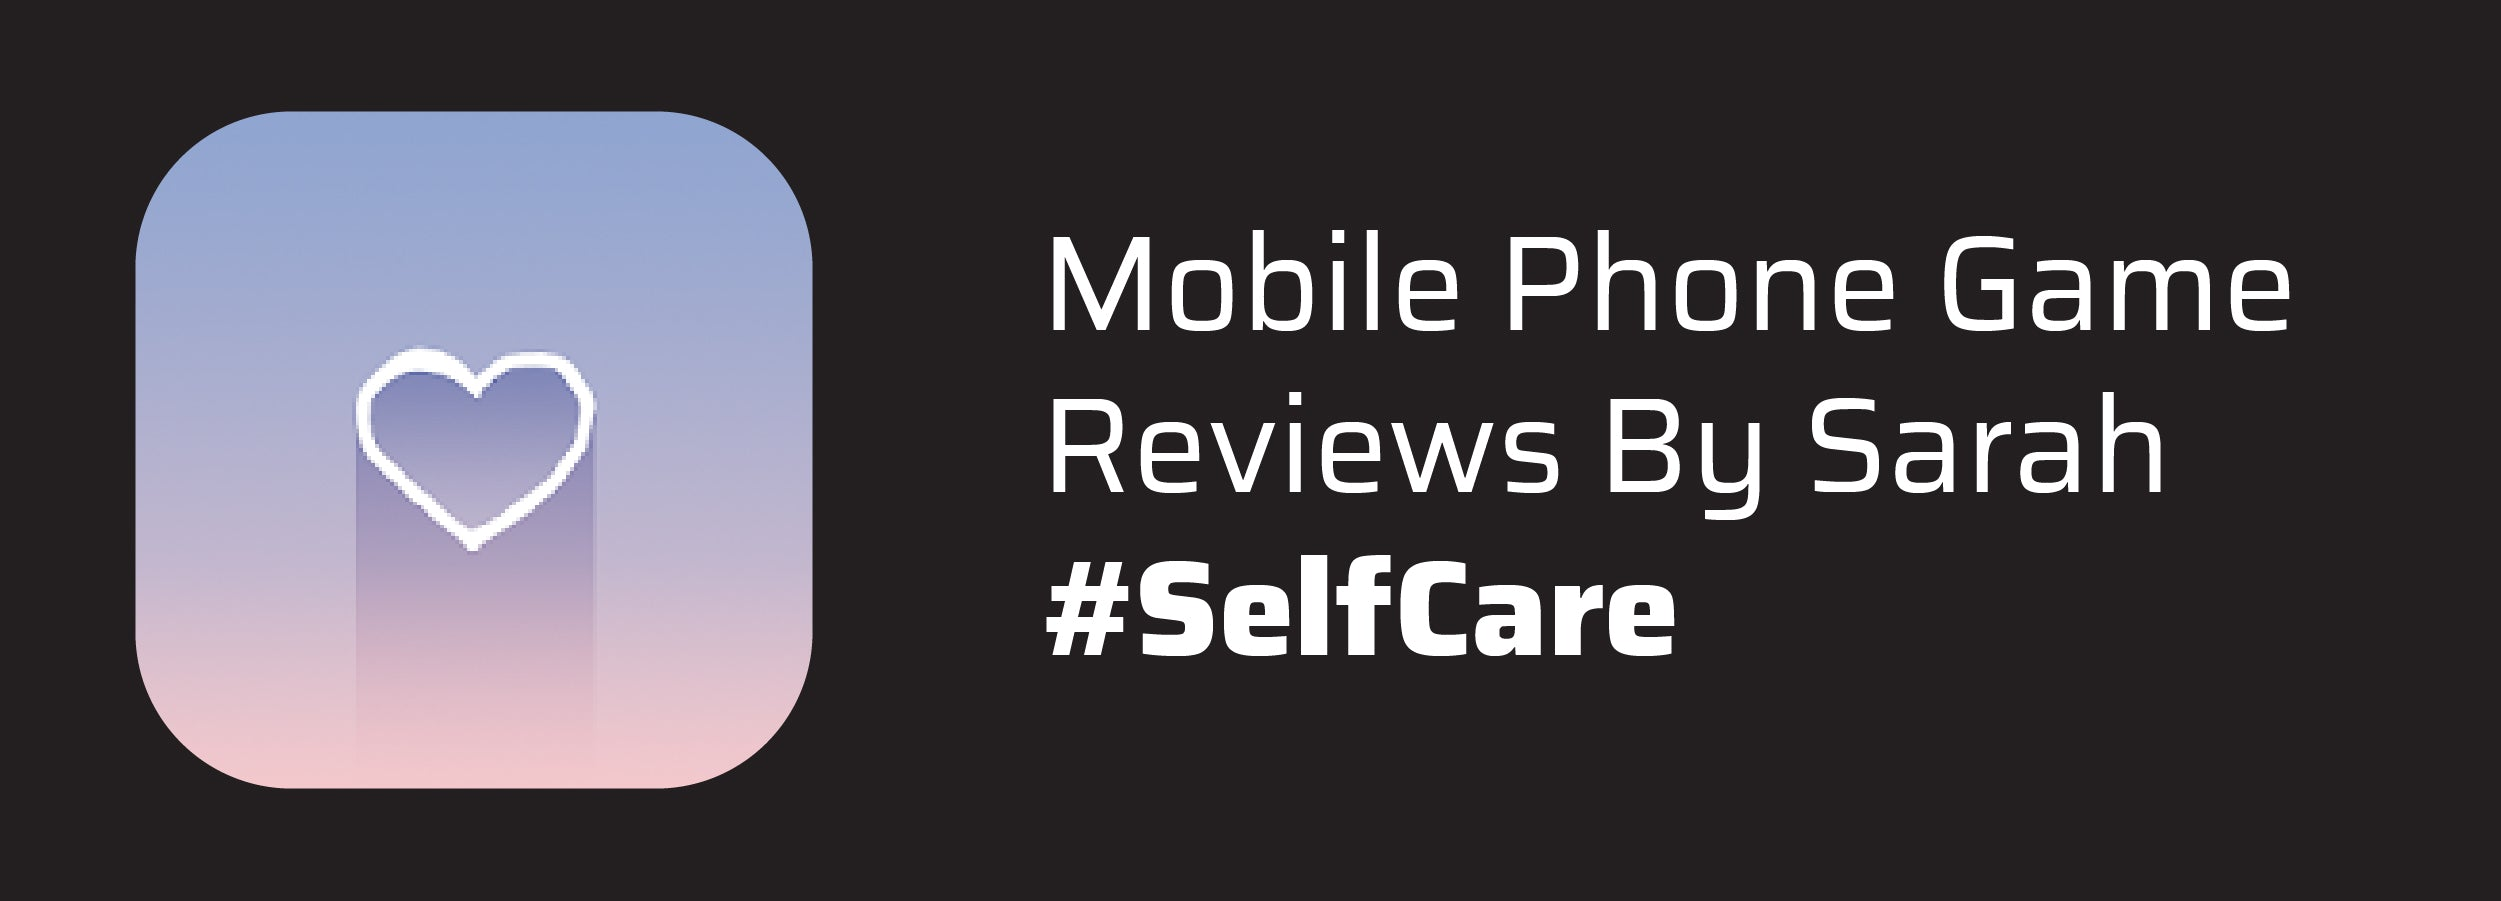 Mobile Phone Game Reviews By Sarah #SelfCare